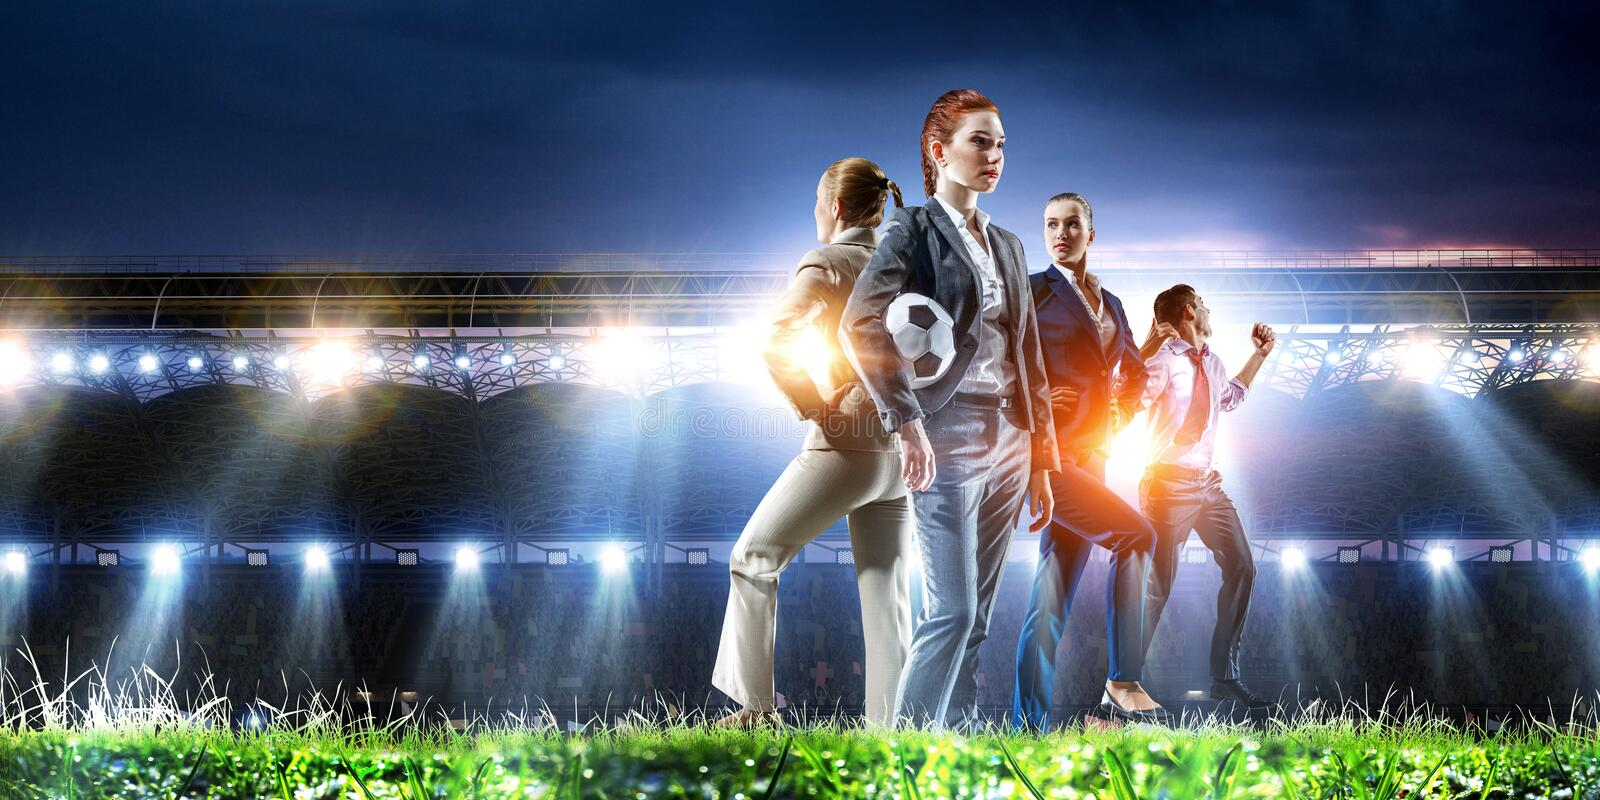 Business team on football stadium. Mixed media stock photography